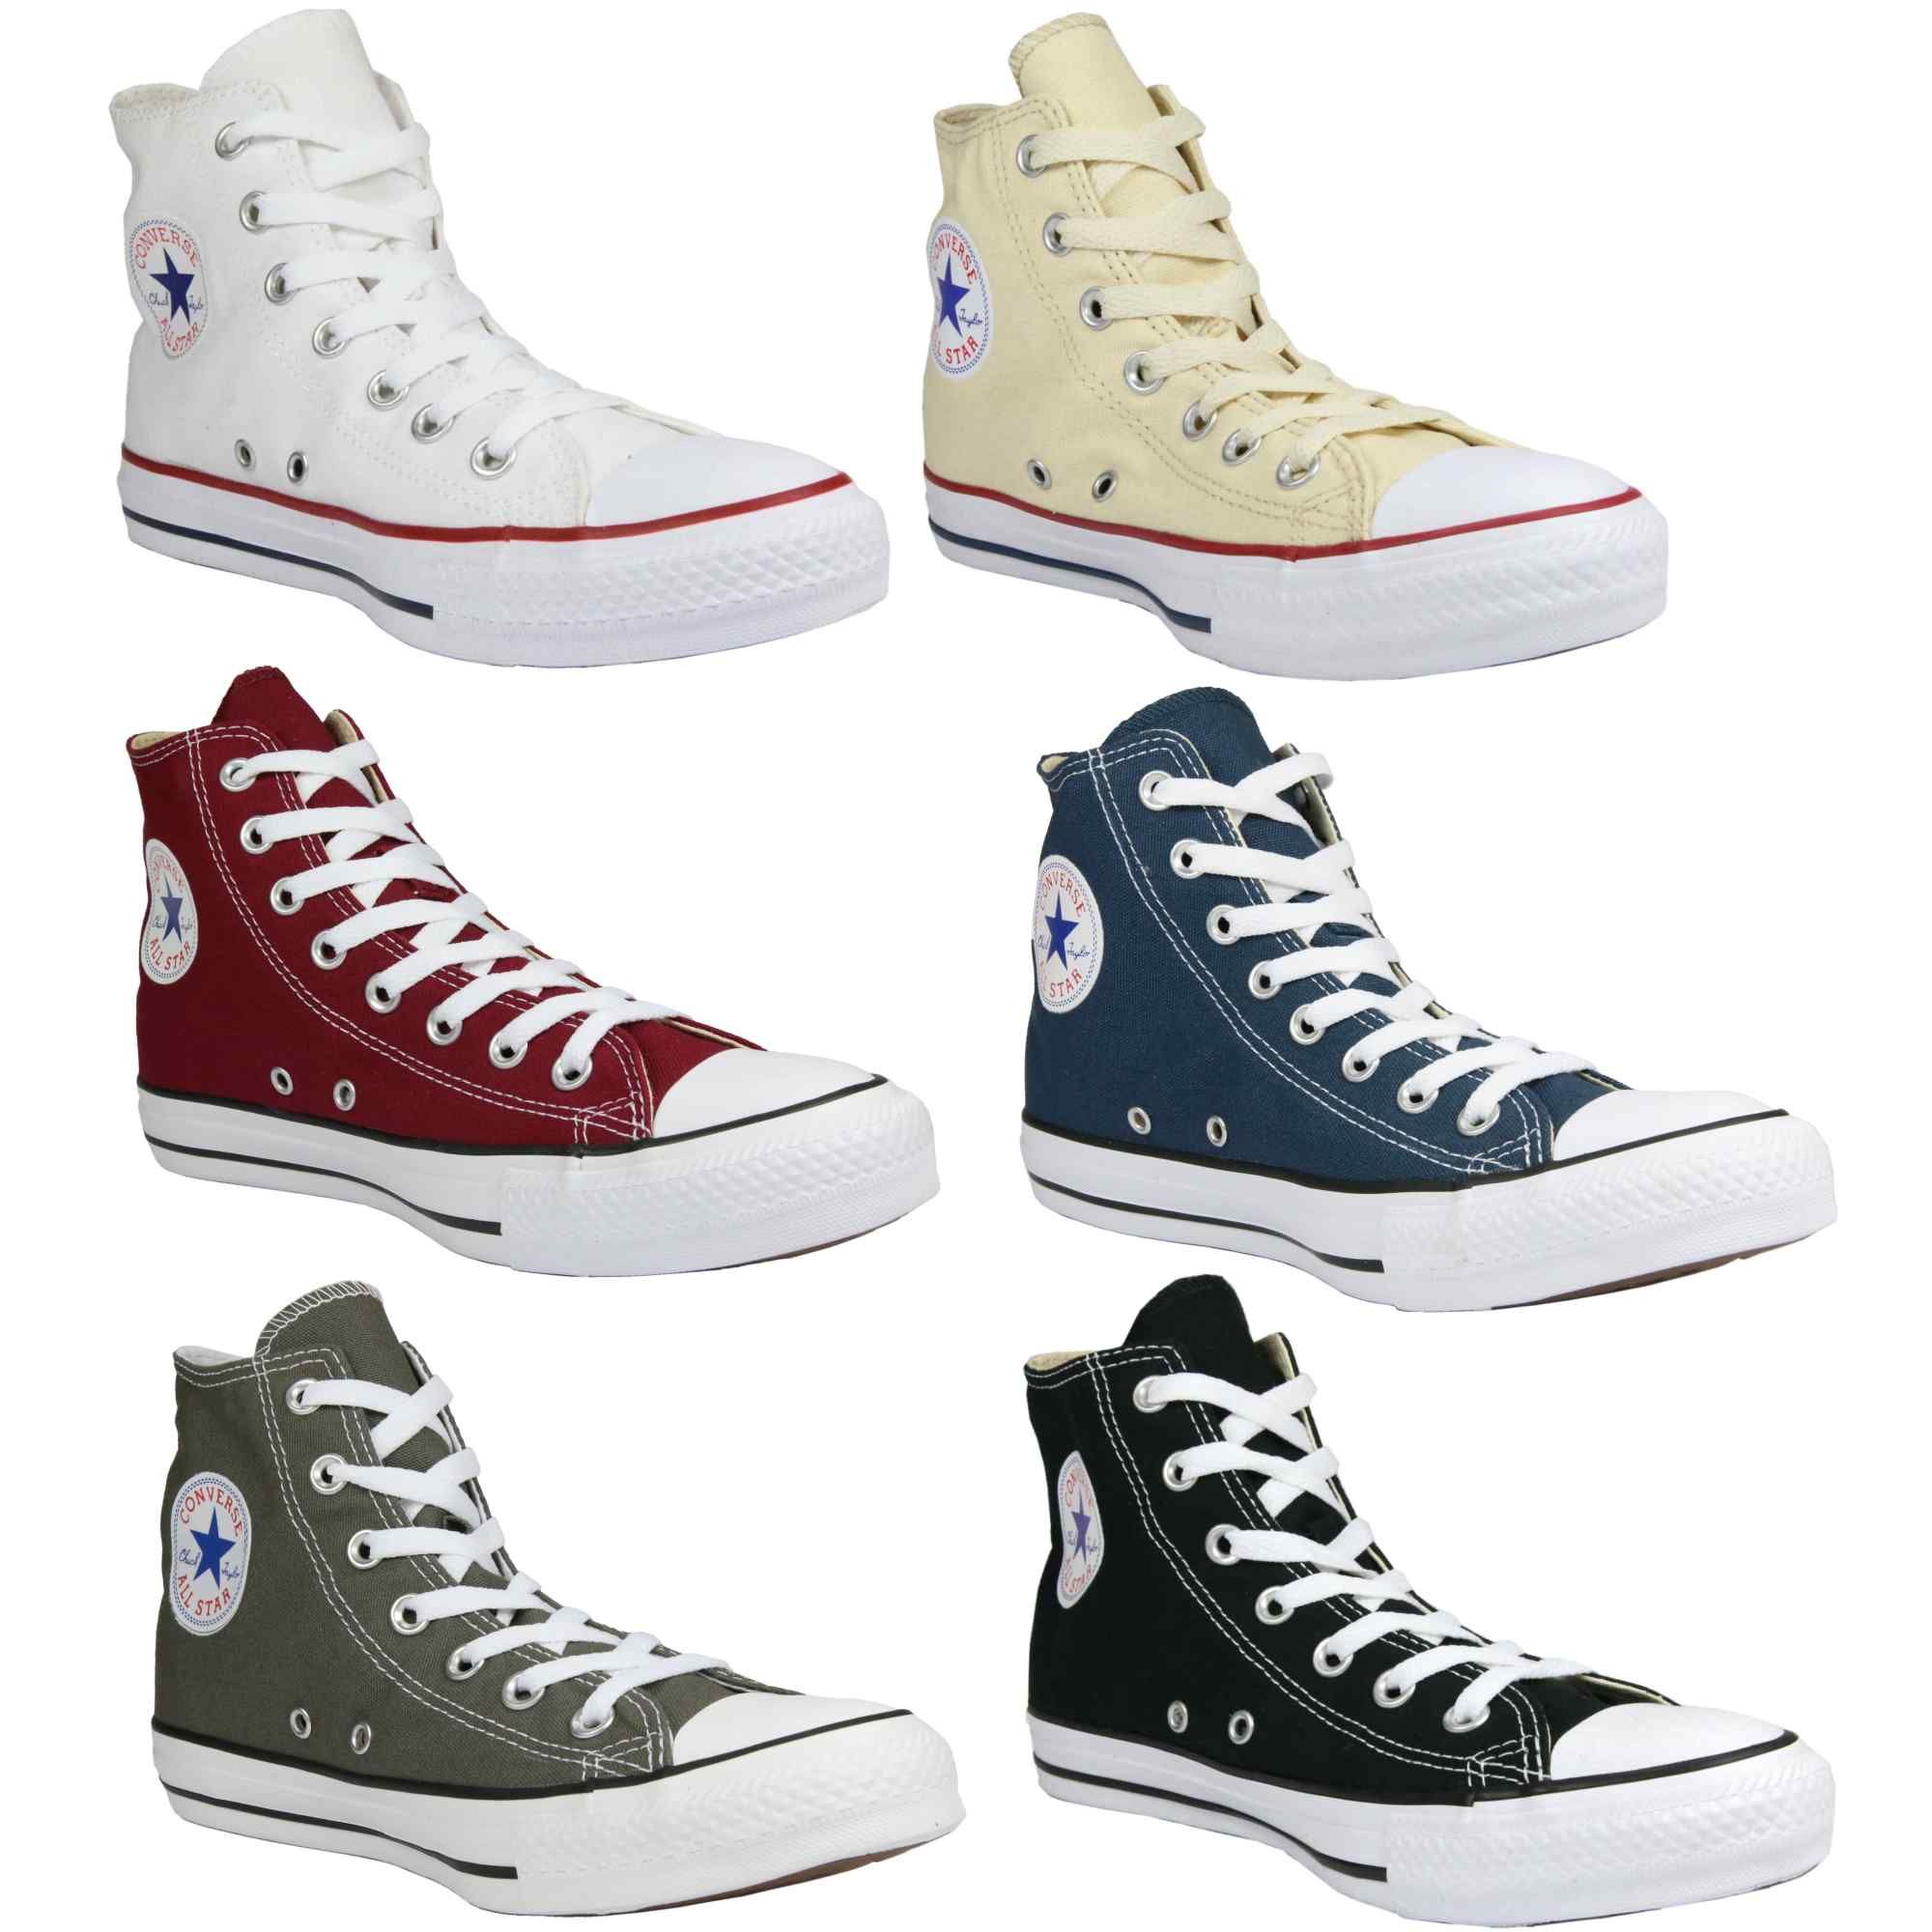 half off 26e54 faa5c Details about Converse Chuck Taylor All Star Hi Shoes High-Top Sneaker  Womens Mens- show original title